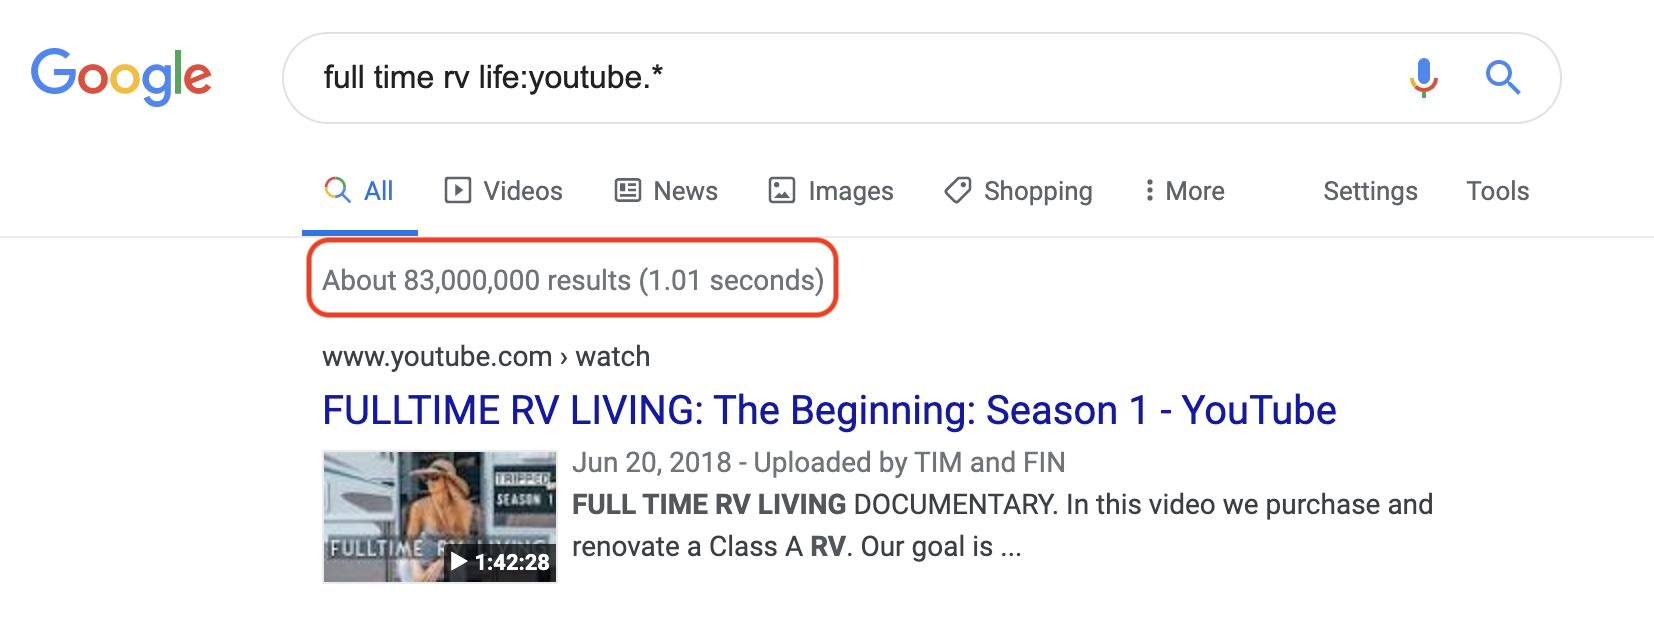 SEO For YouTube: How To Get More Views On YouTube for Free 2